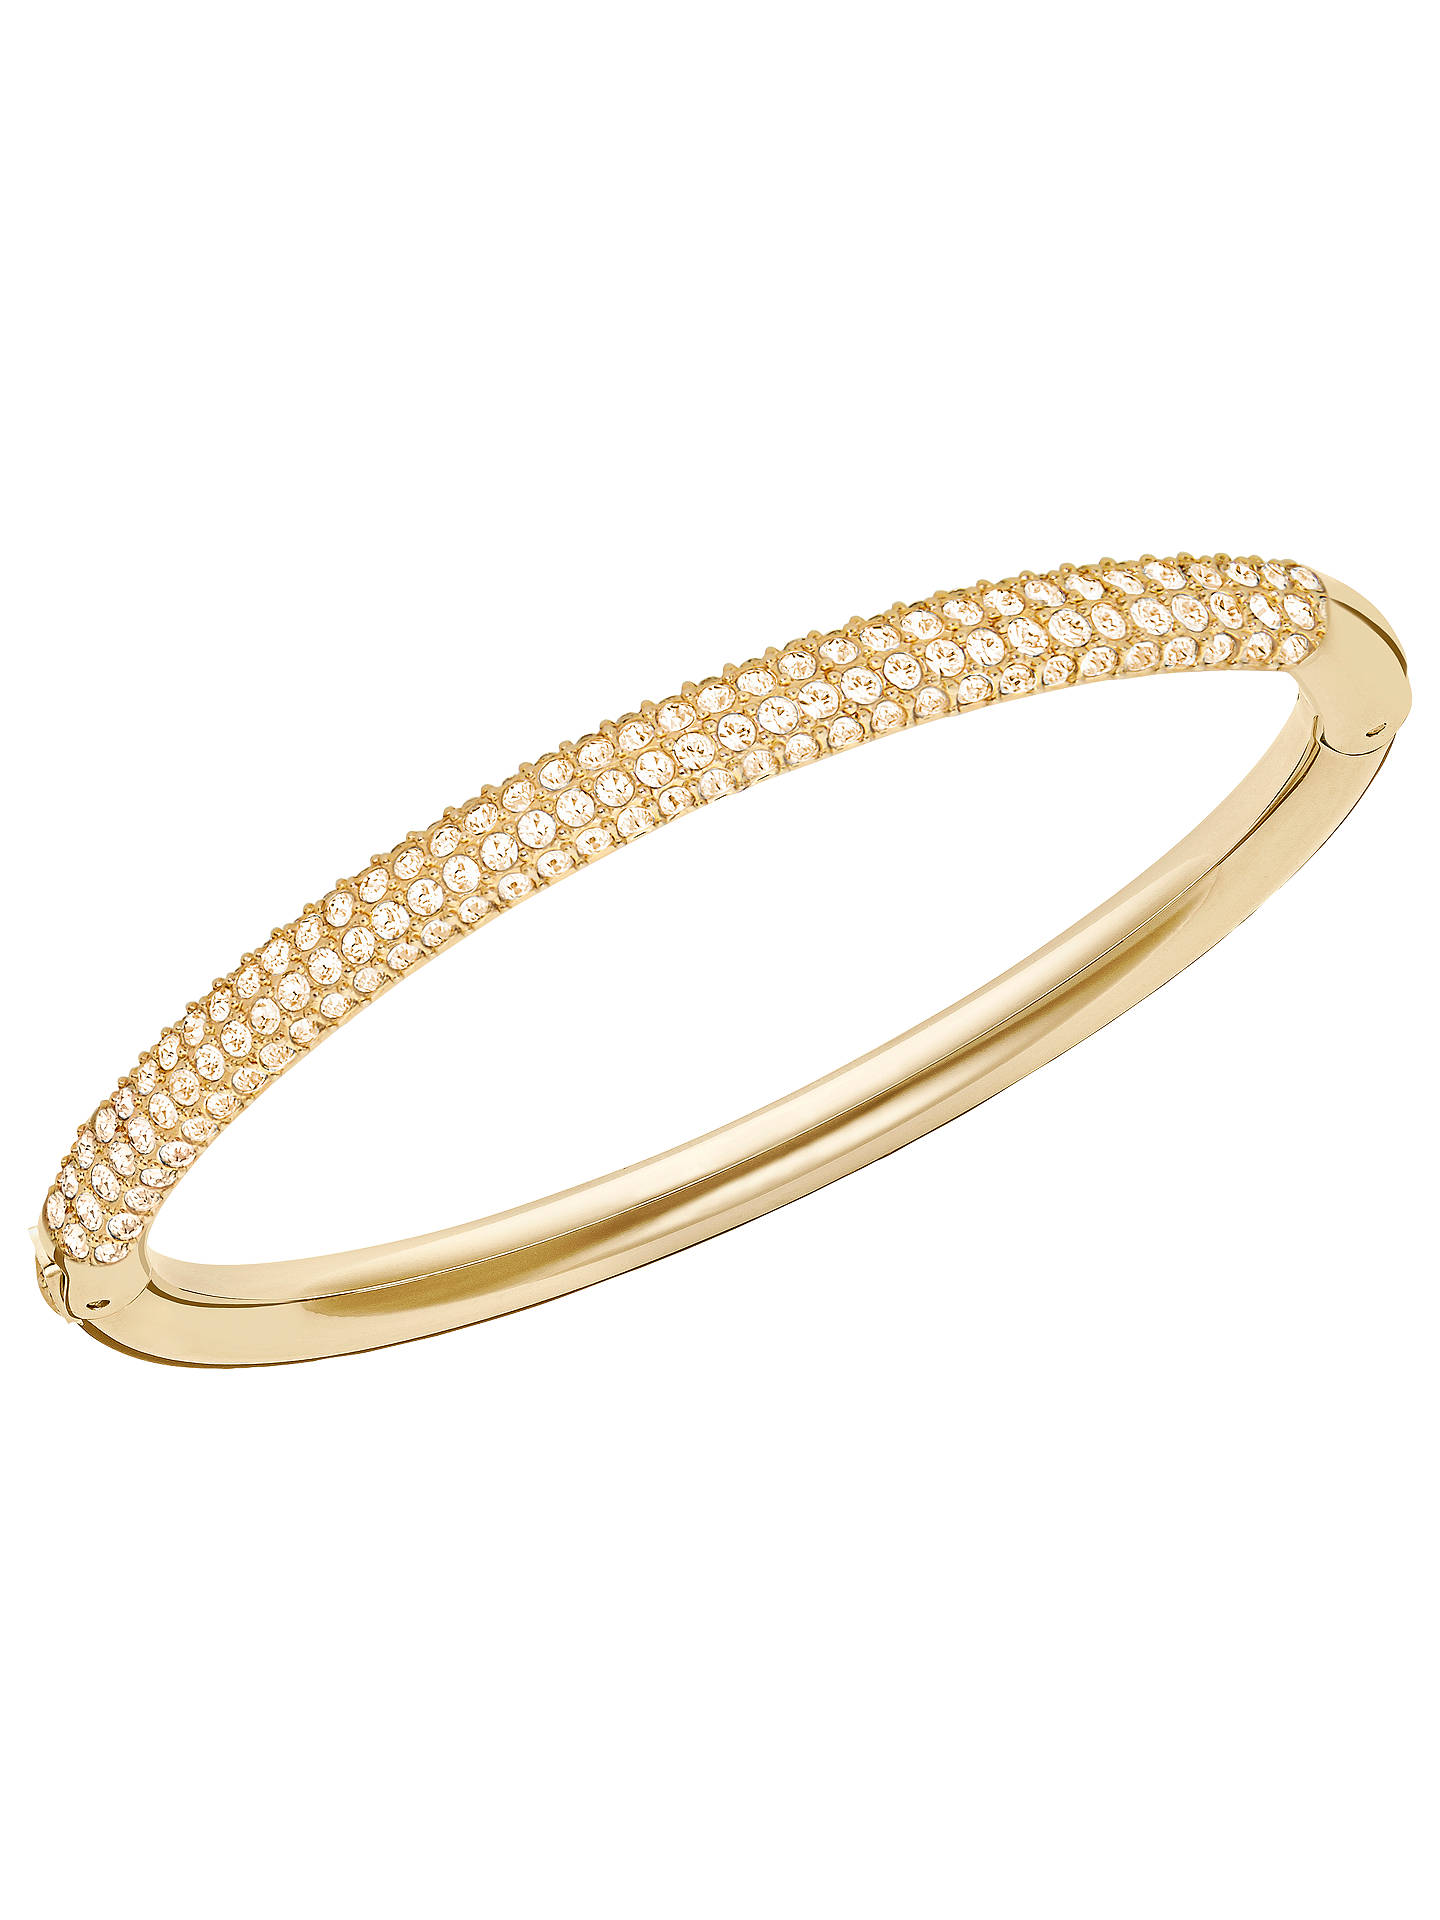 BuySwarovski Stone Mini Crystal Bangle, Gold Online at johnlewis.com